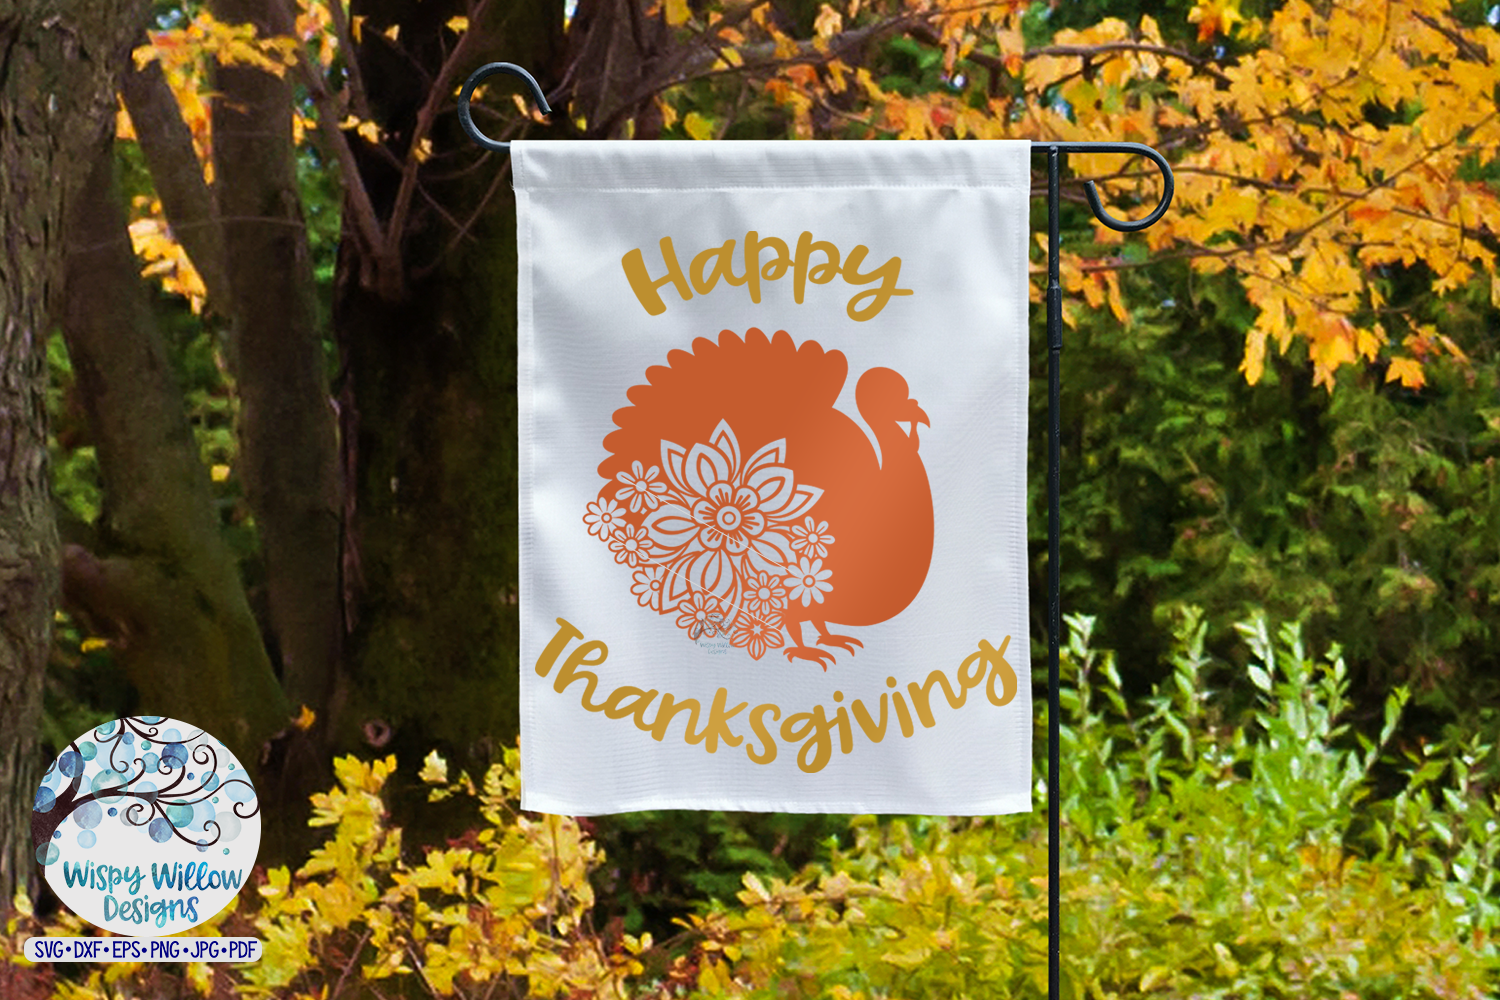 Happy Thanksgiving SVG |Turkey SVG | Fall SVG Cut File example image 3